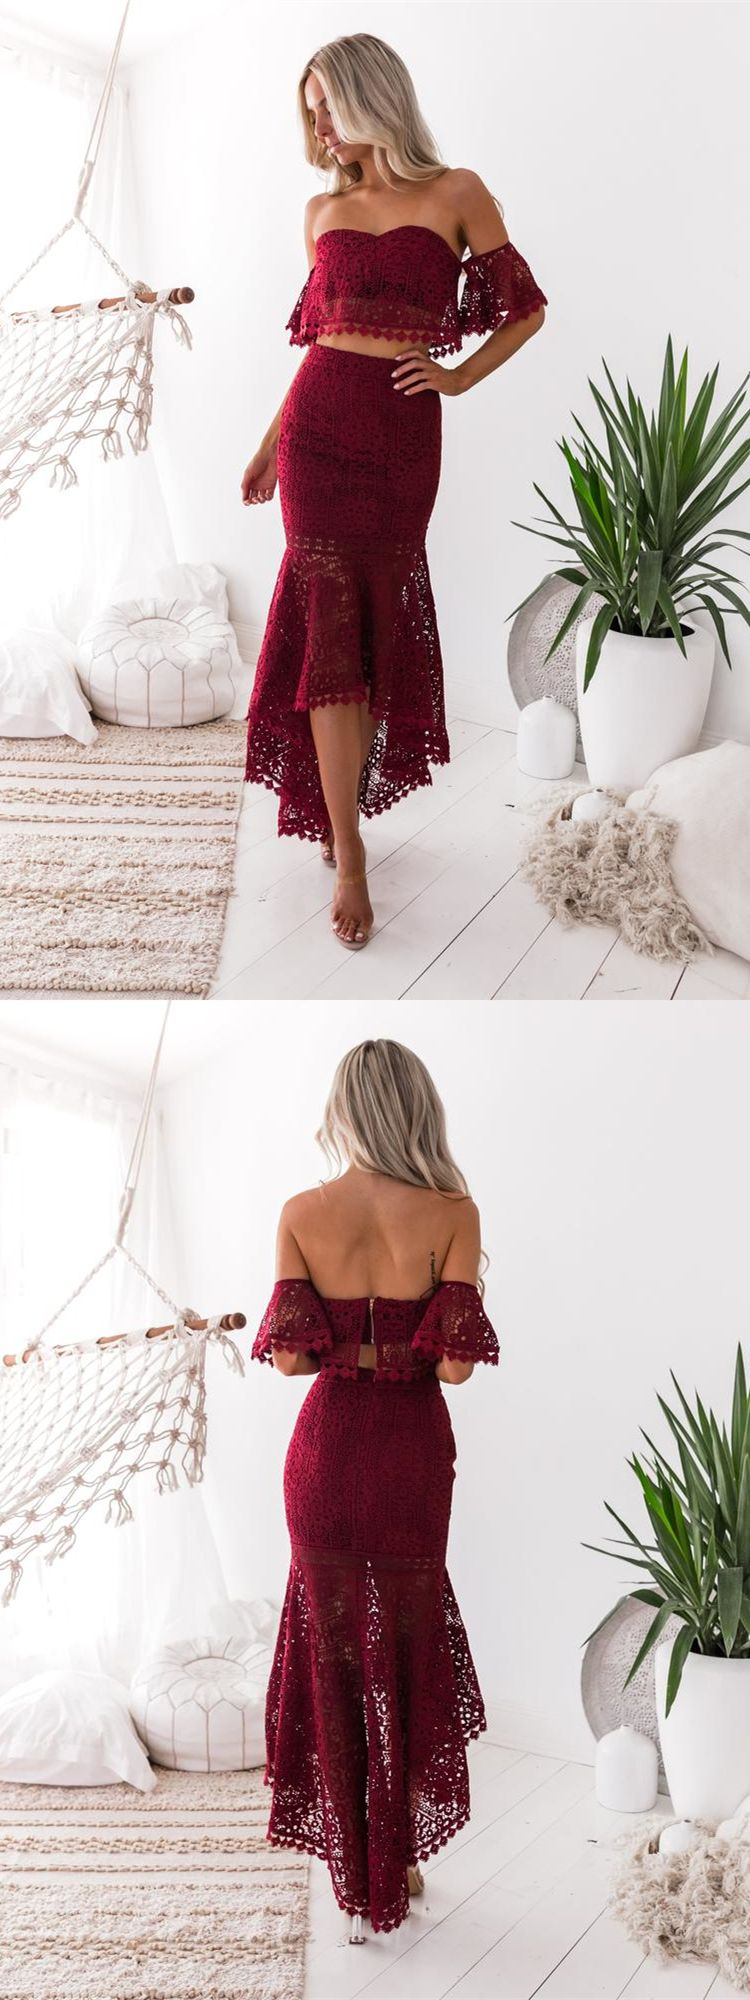 Two piece mermaid off the shoulder high low burgundy lace prom dress